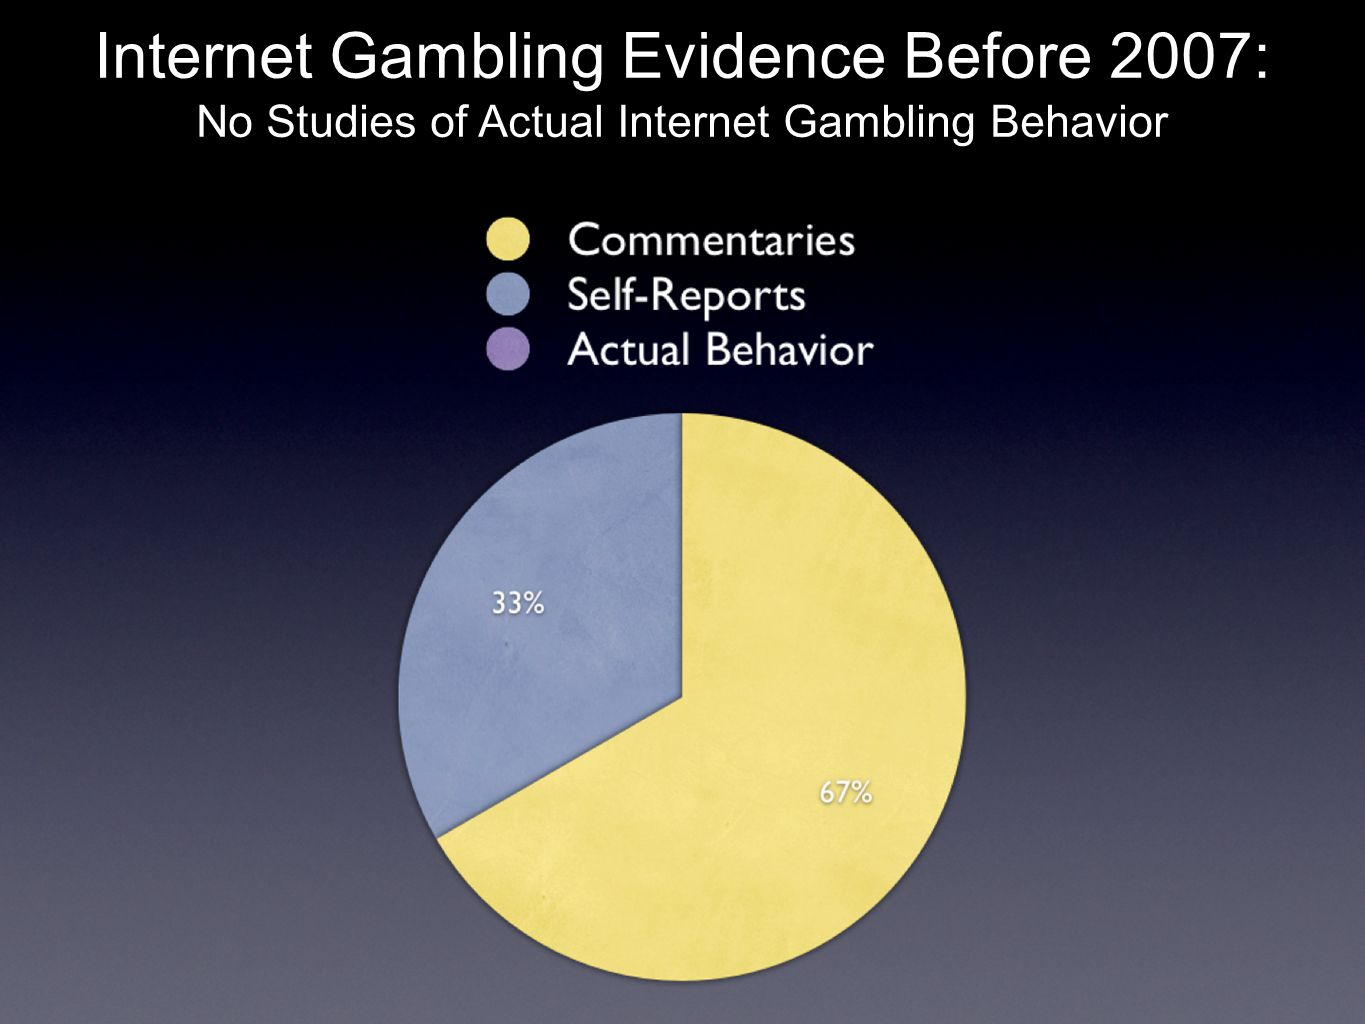 Internet Gambling Evidence Before 2007: No Studies of Actual Internet Gambling Behavior